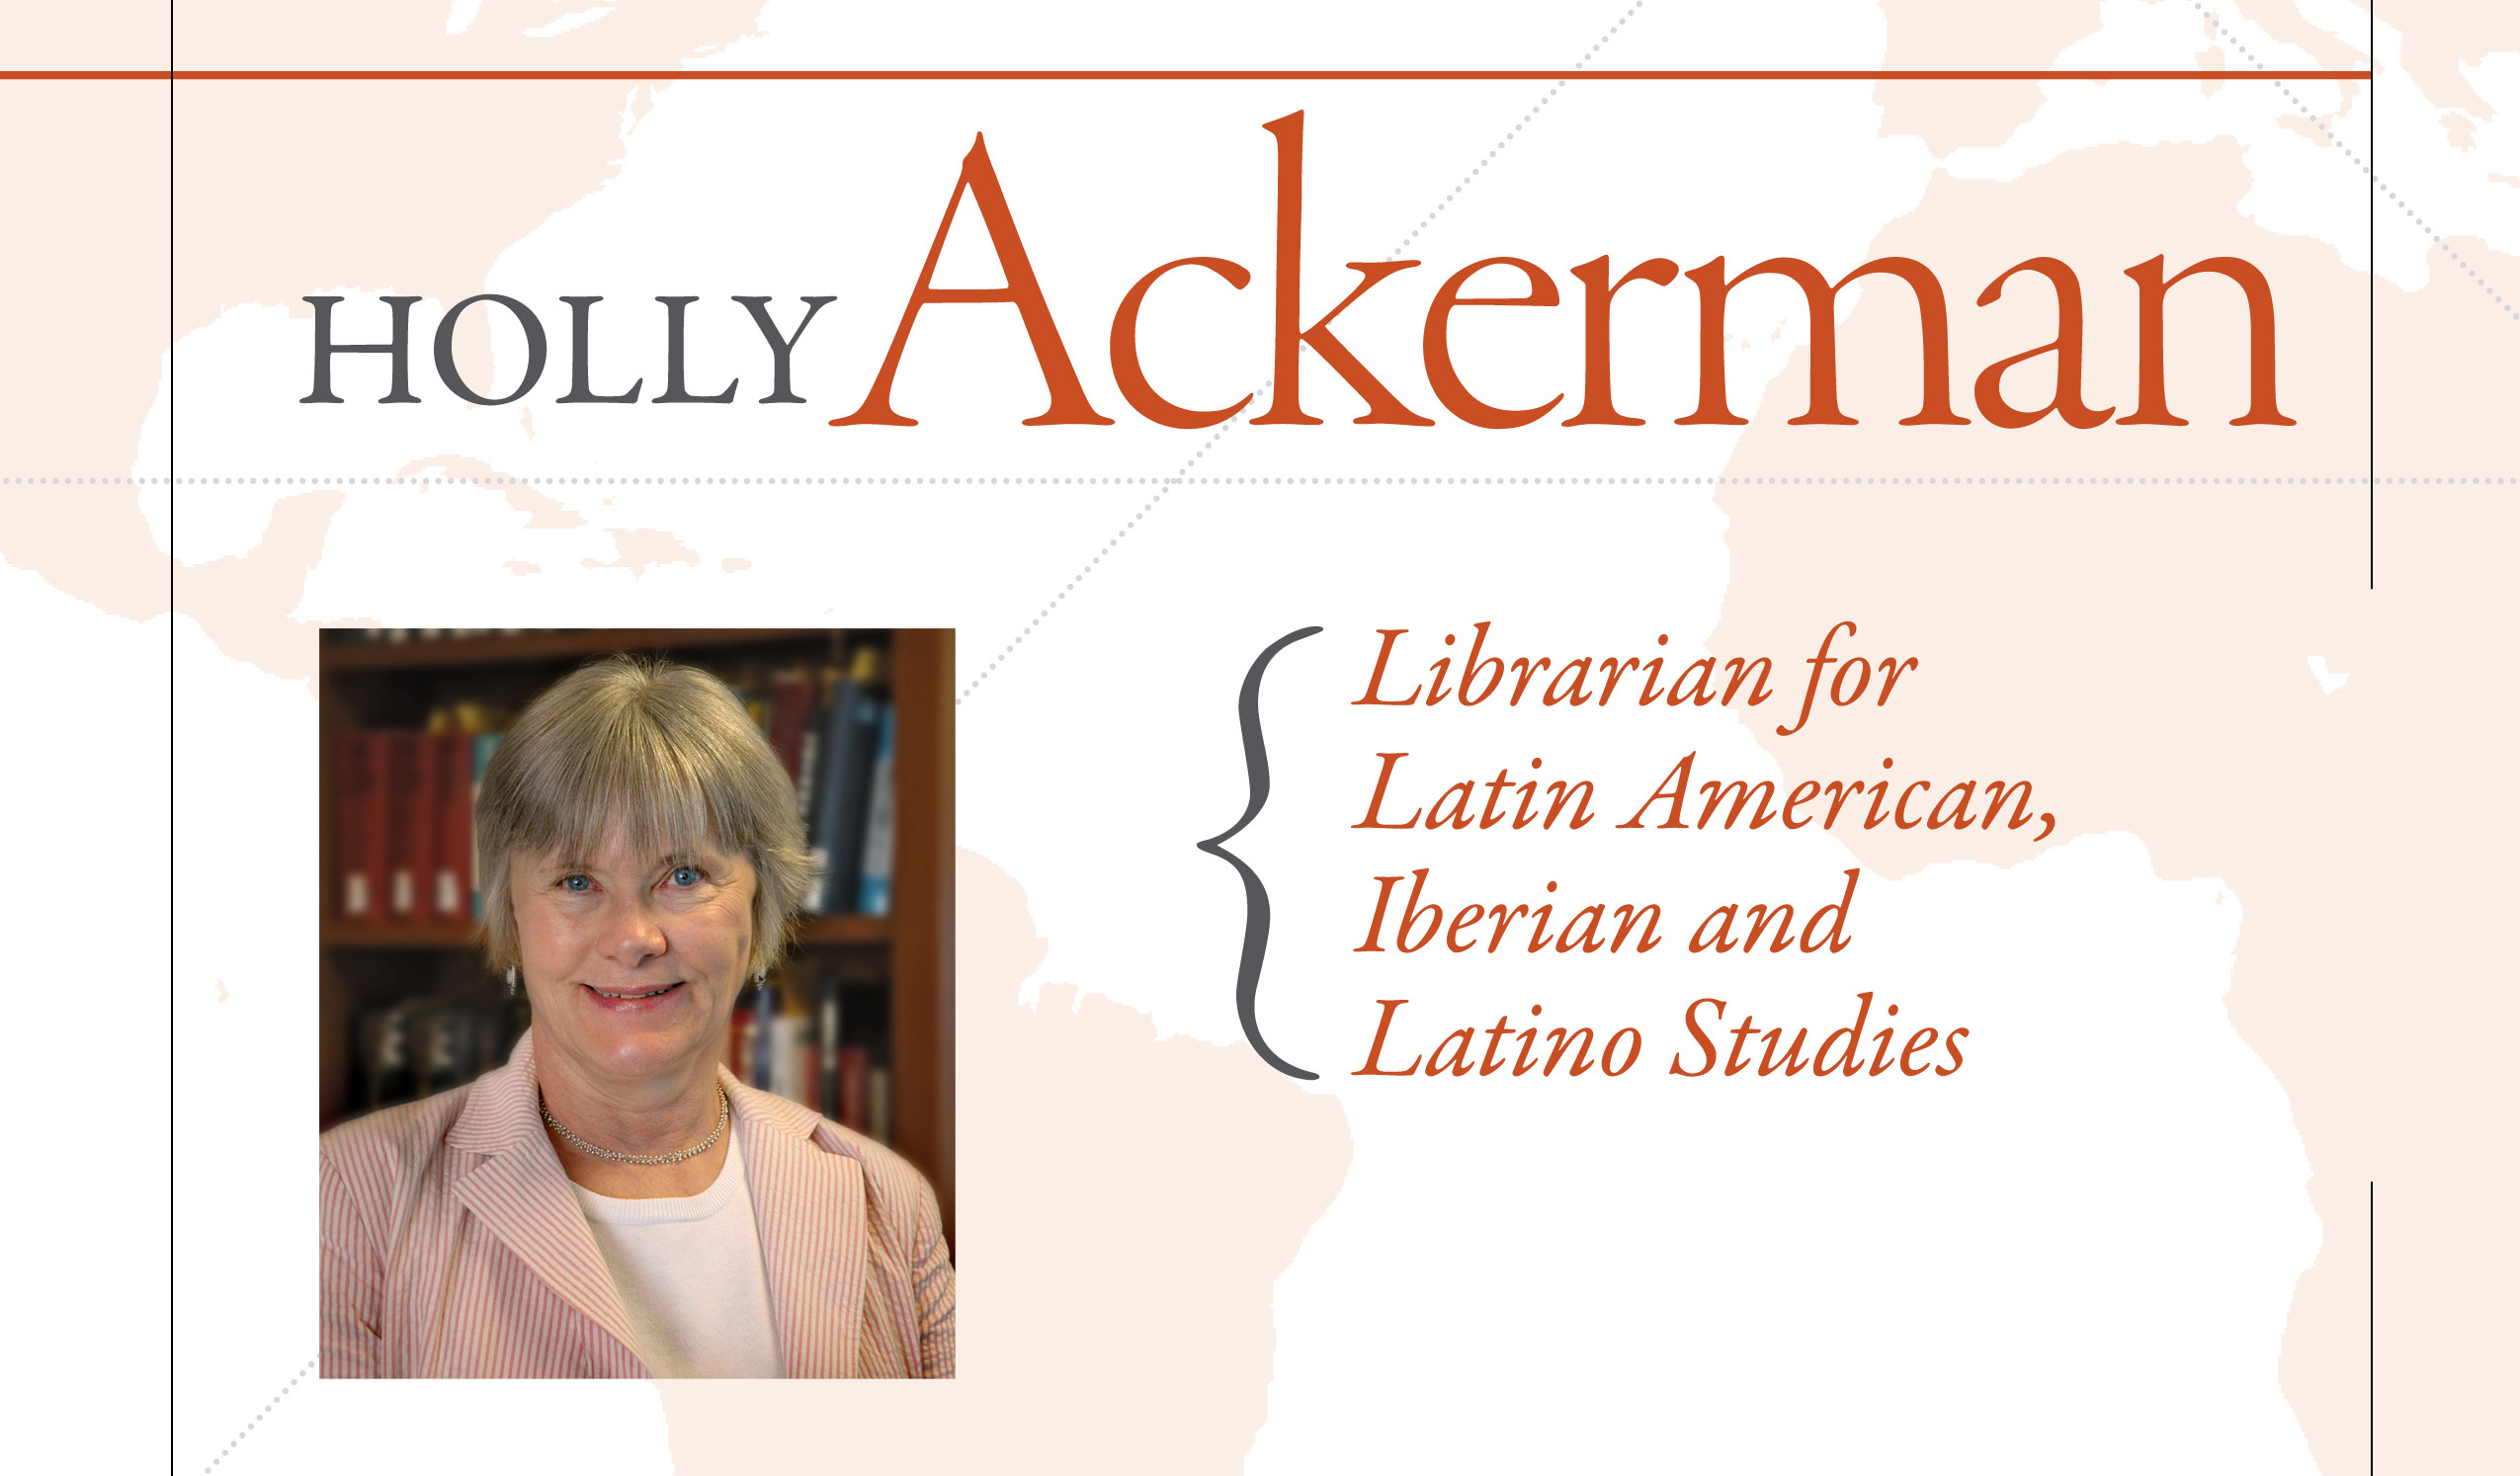 holly ackerman